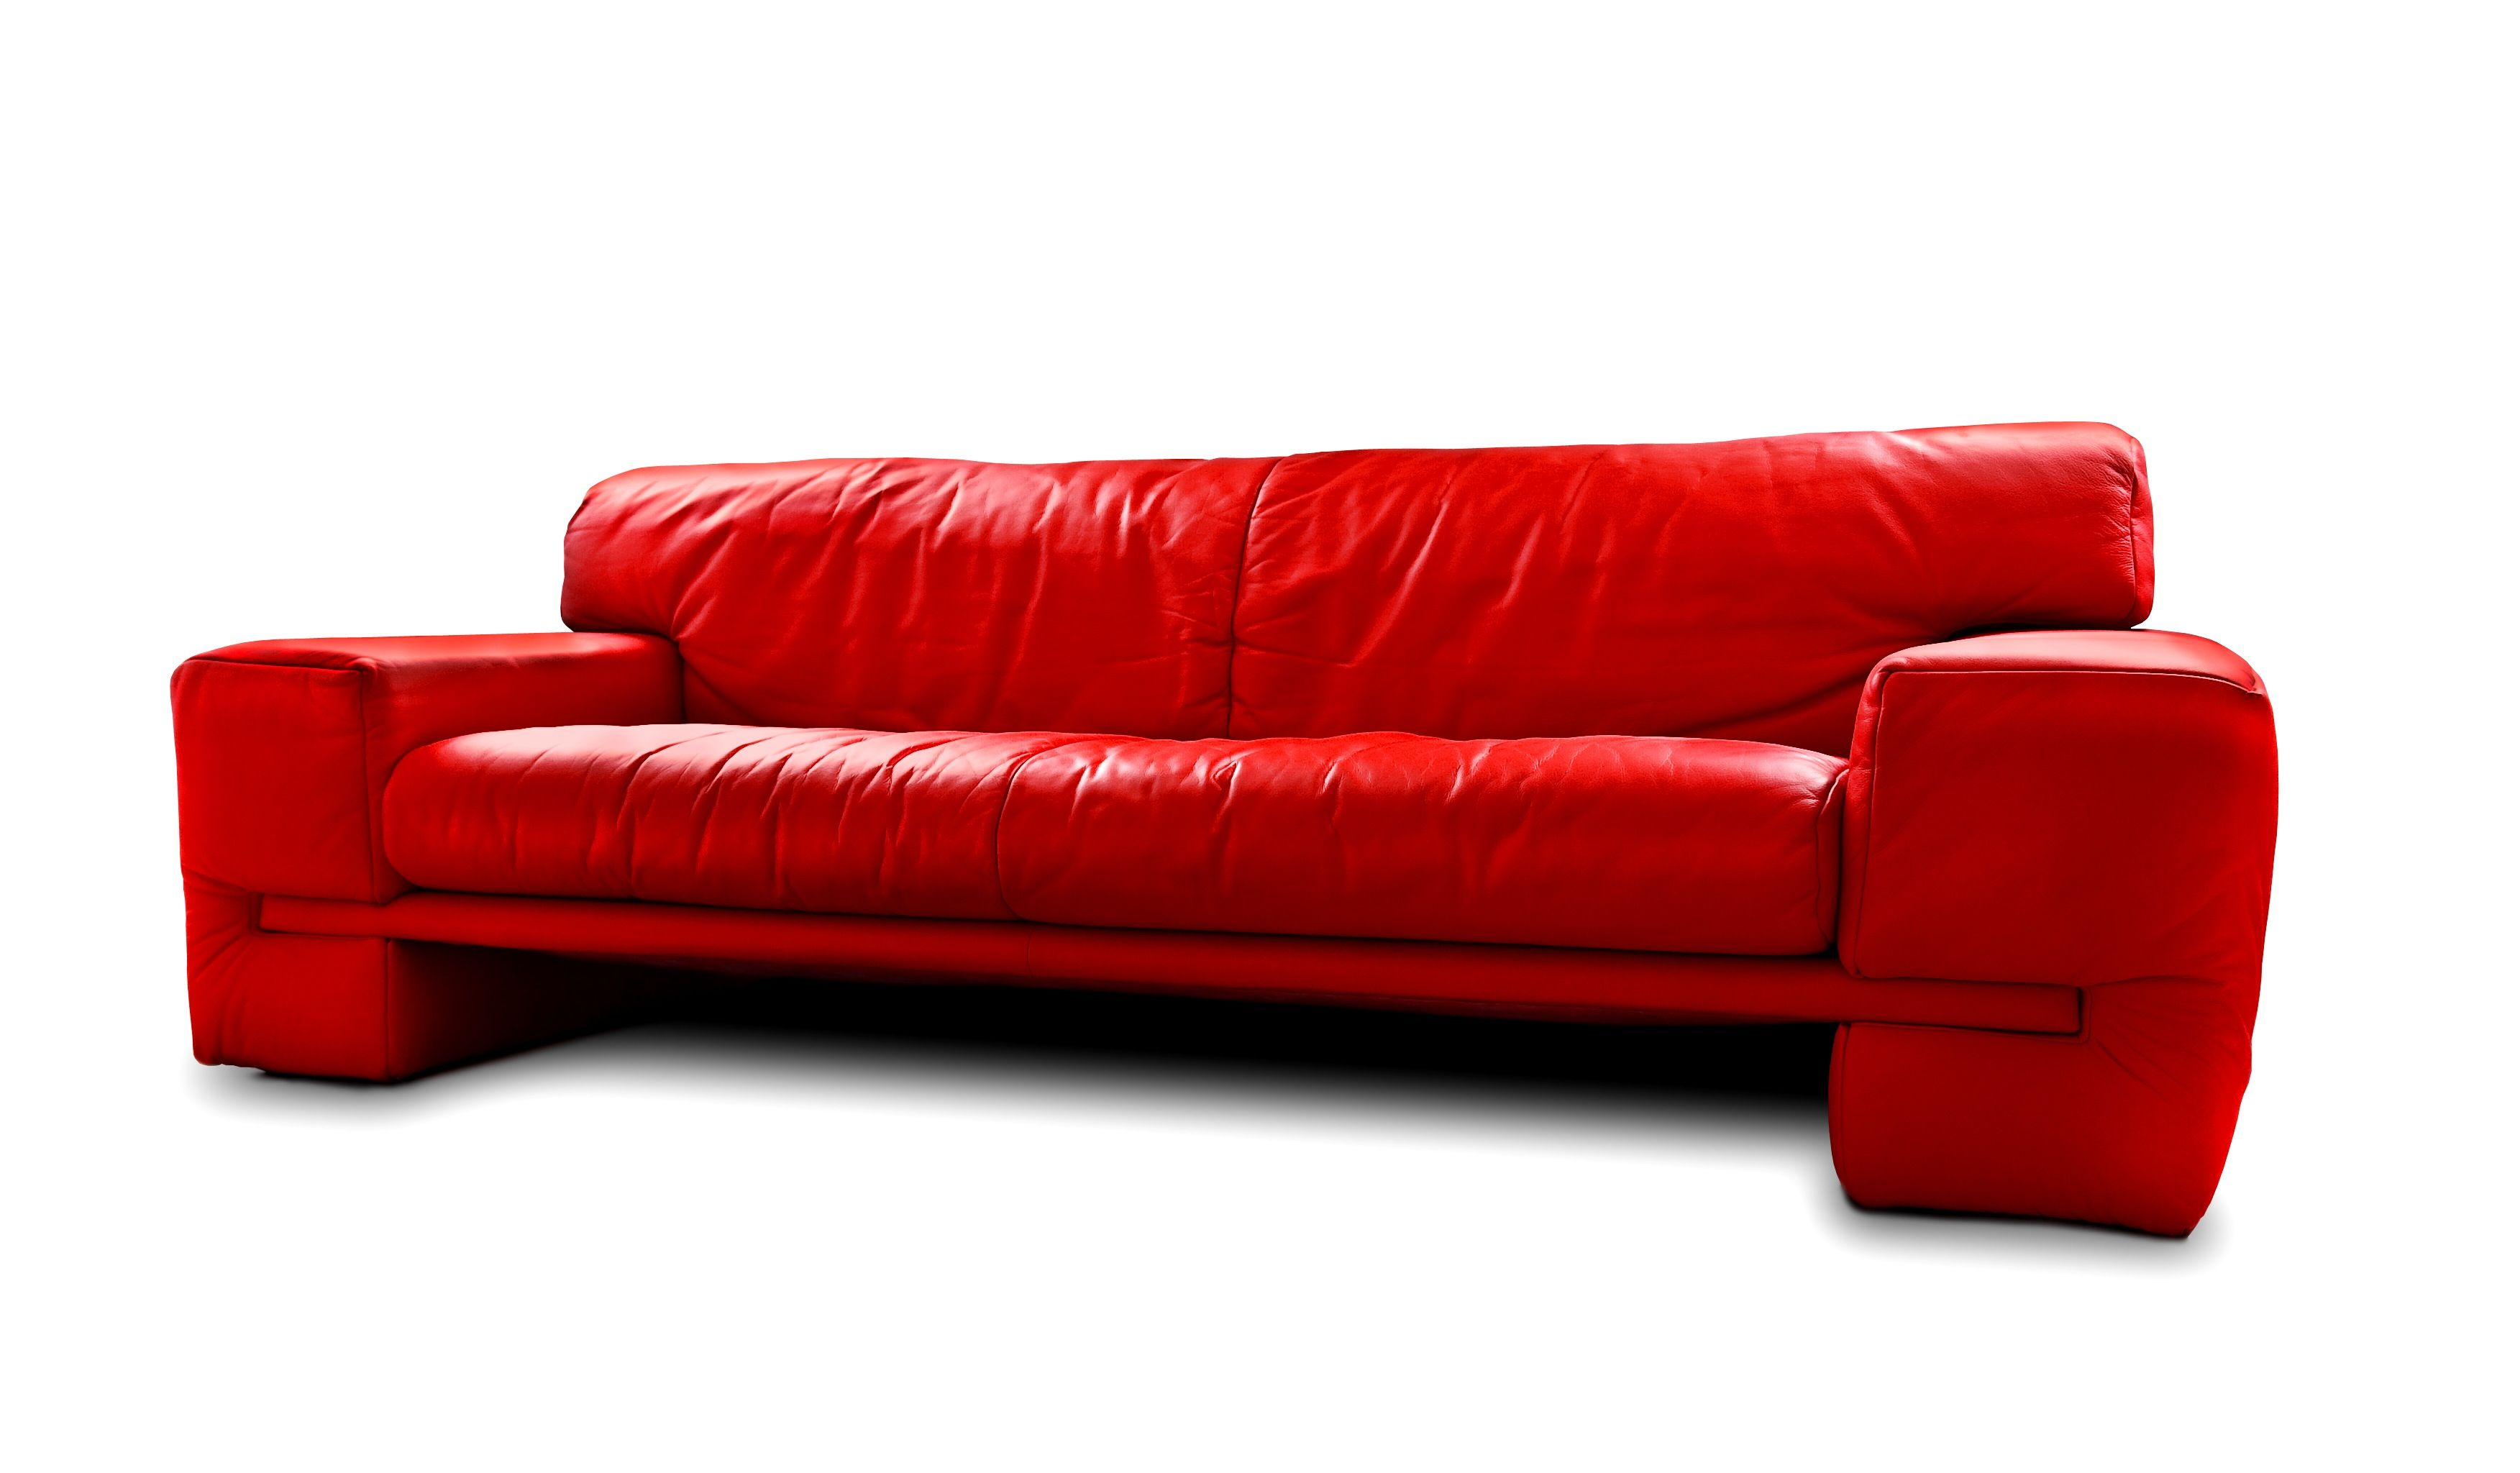 modern red sofa literary ideas-Stylish Red sofa Literary Wallpaper